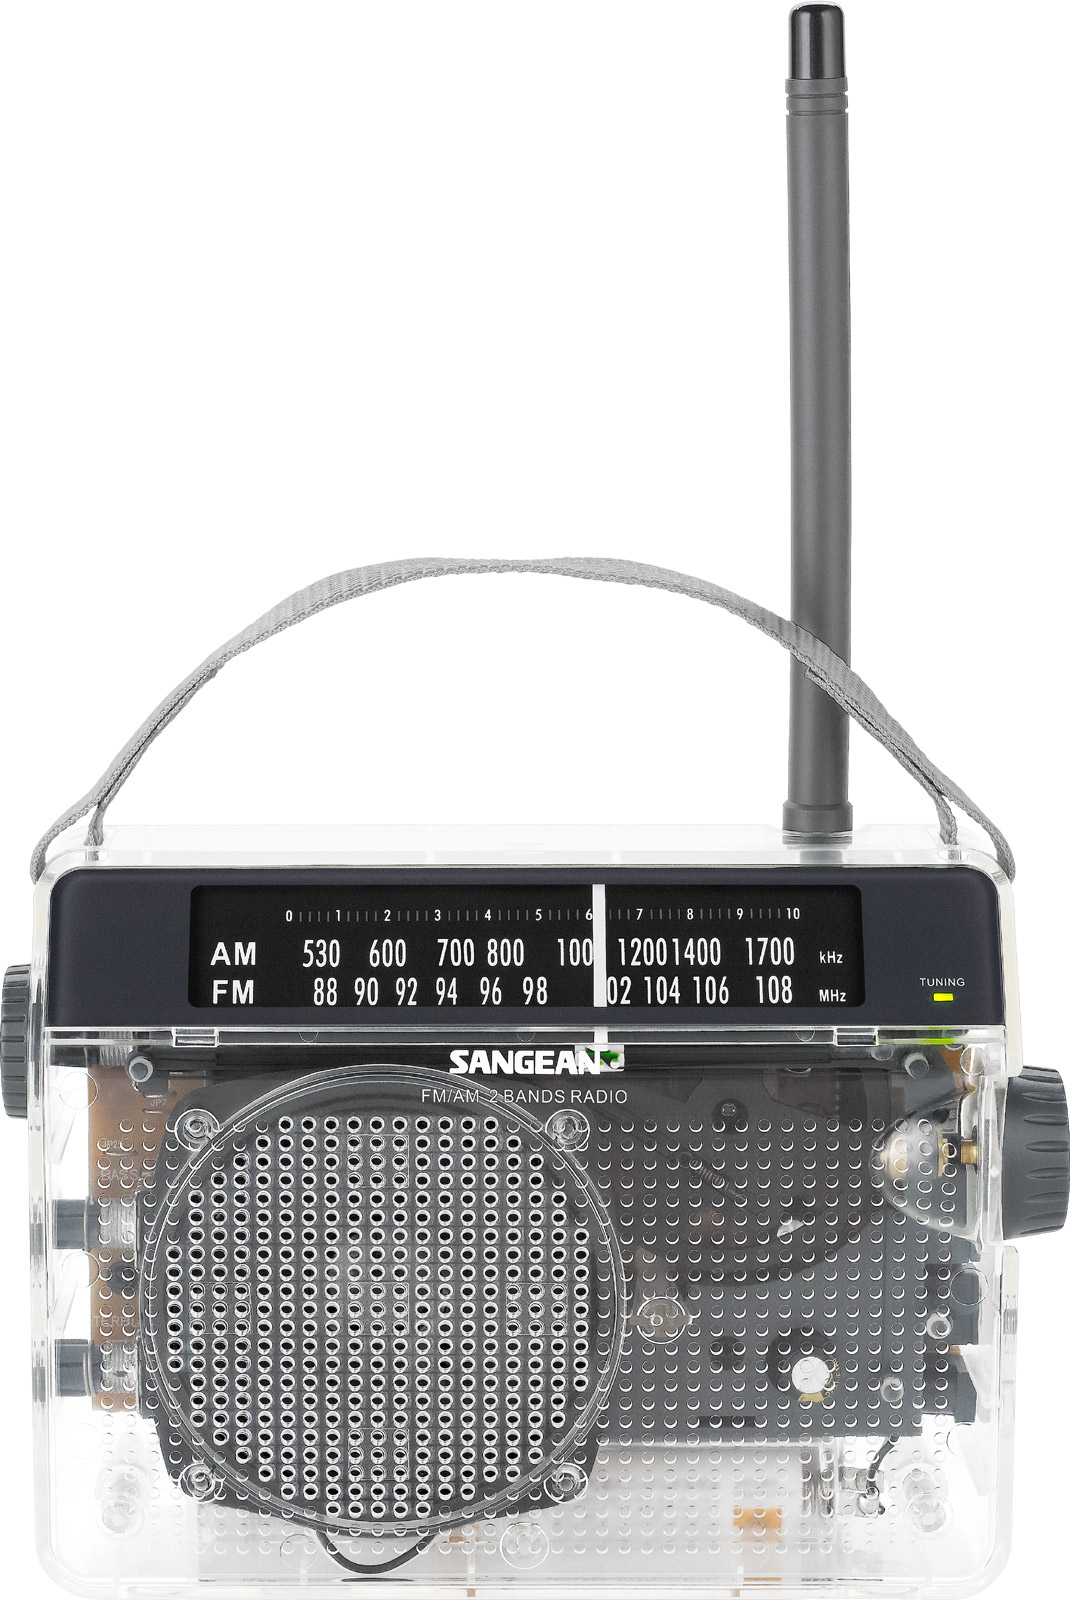 Pr-d6cl   Fm    Am Compact Analogue Tuning Portable Receiver